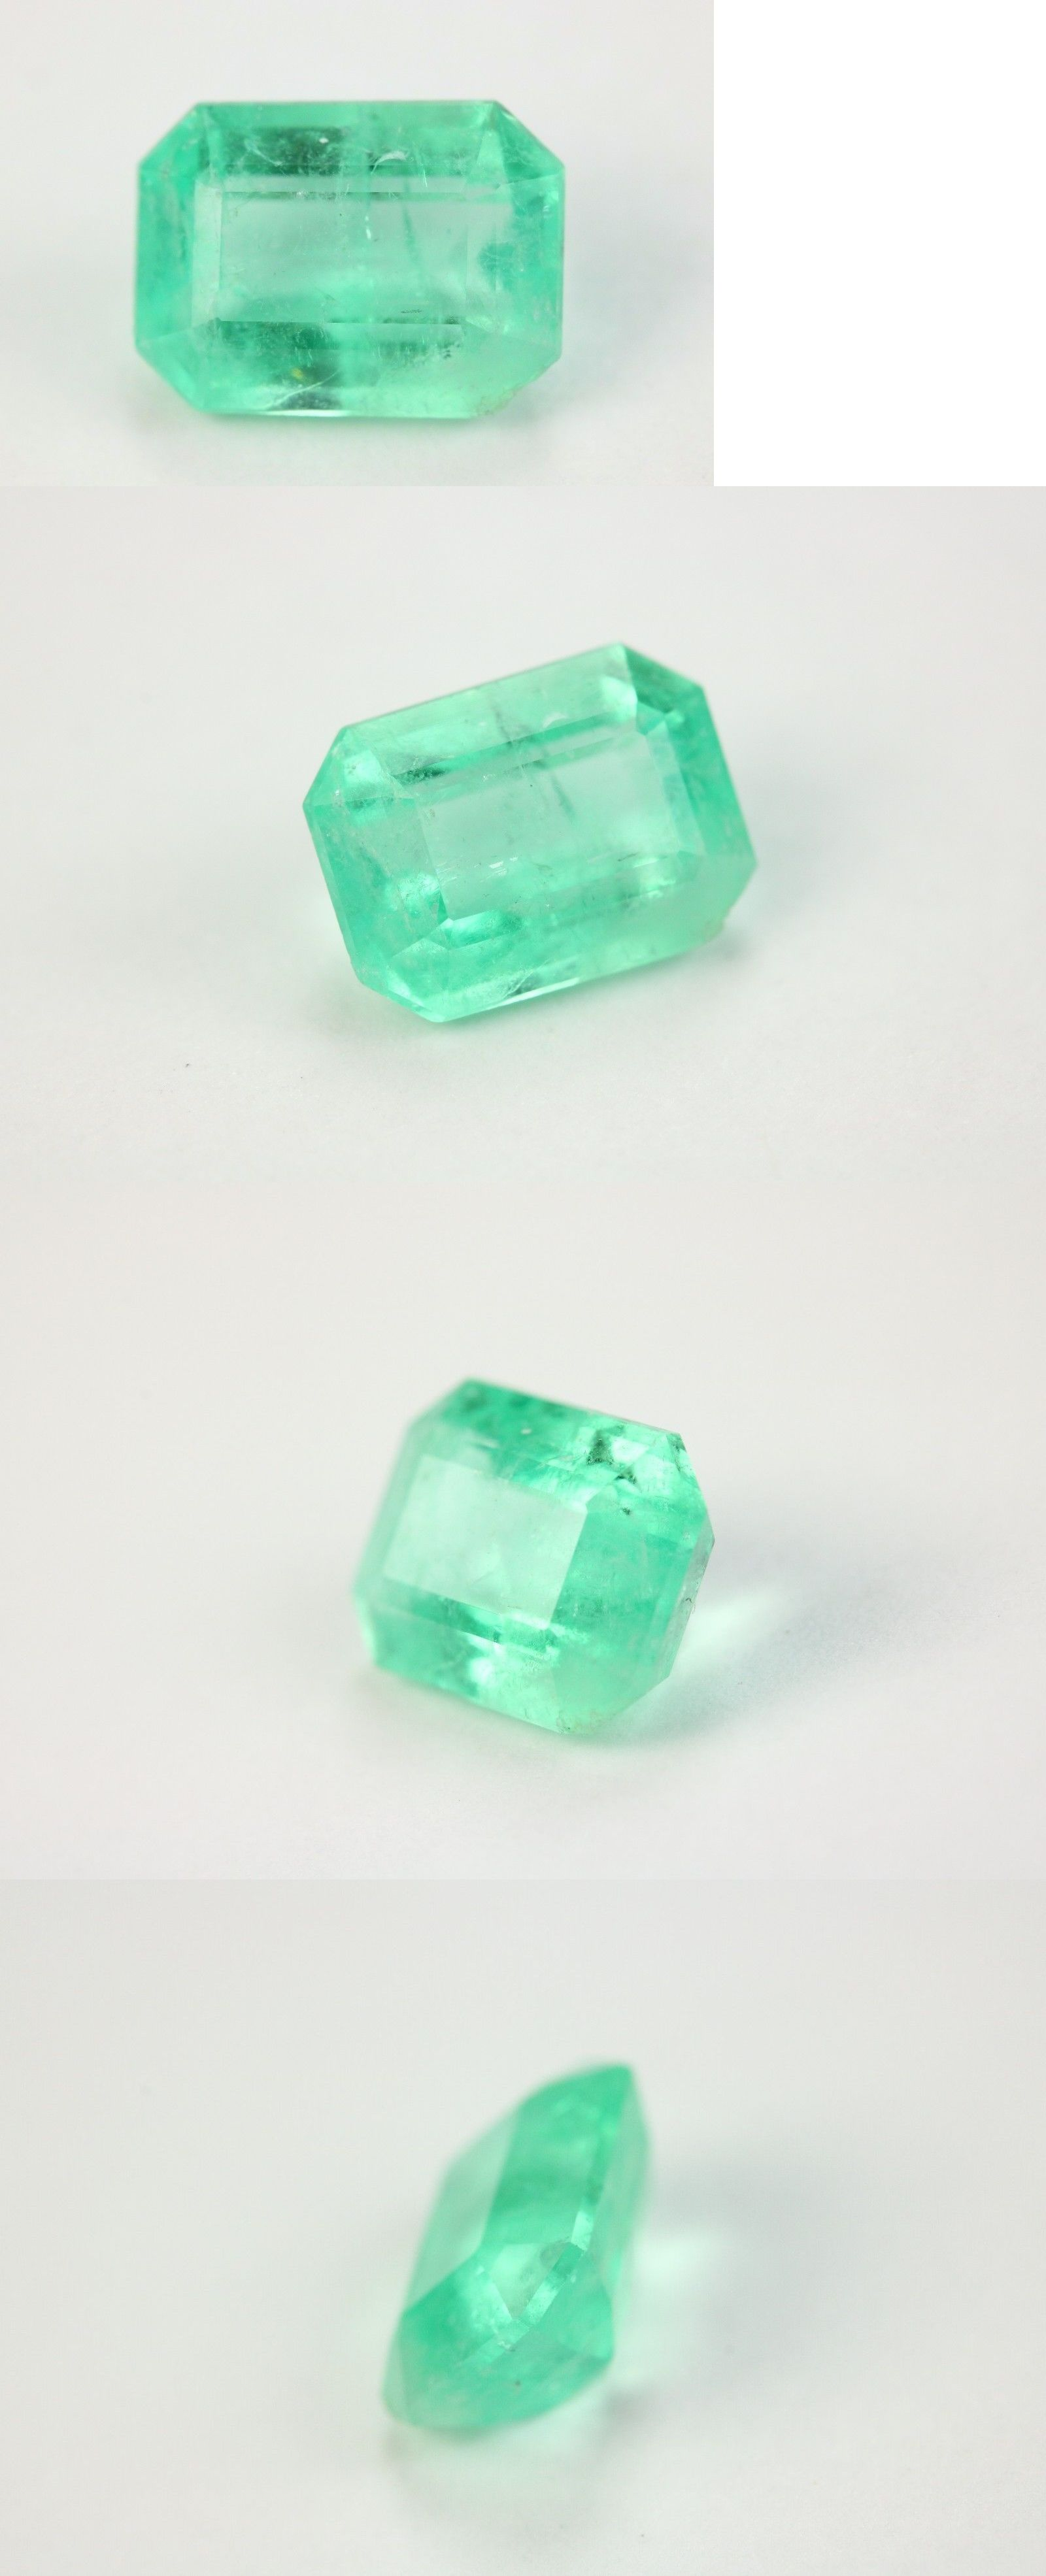 Oval Muzo Colombian Emerald Collection Natural 7-9 Ct Untreated AGSL Certified